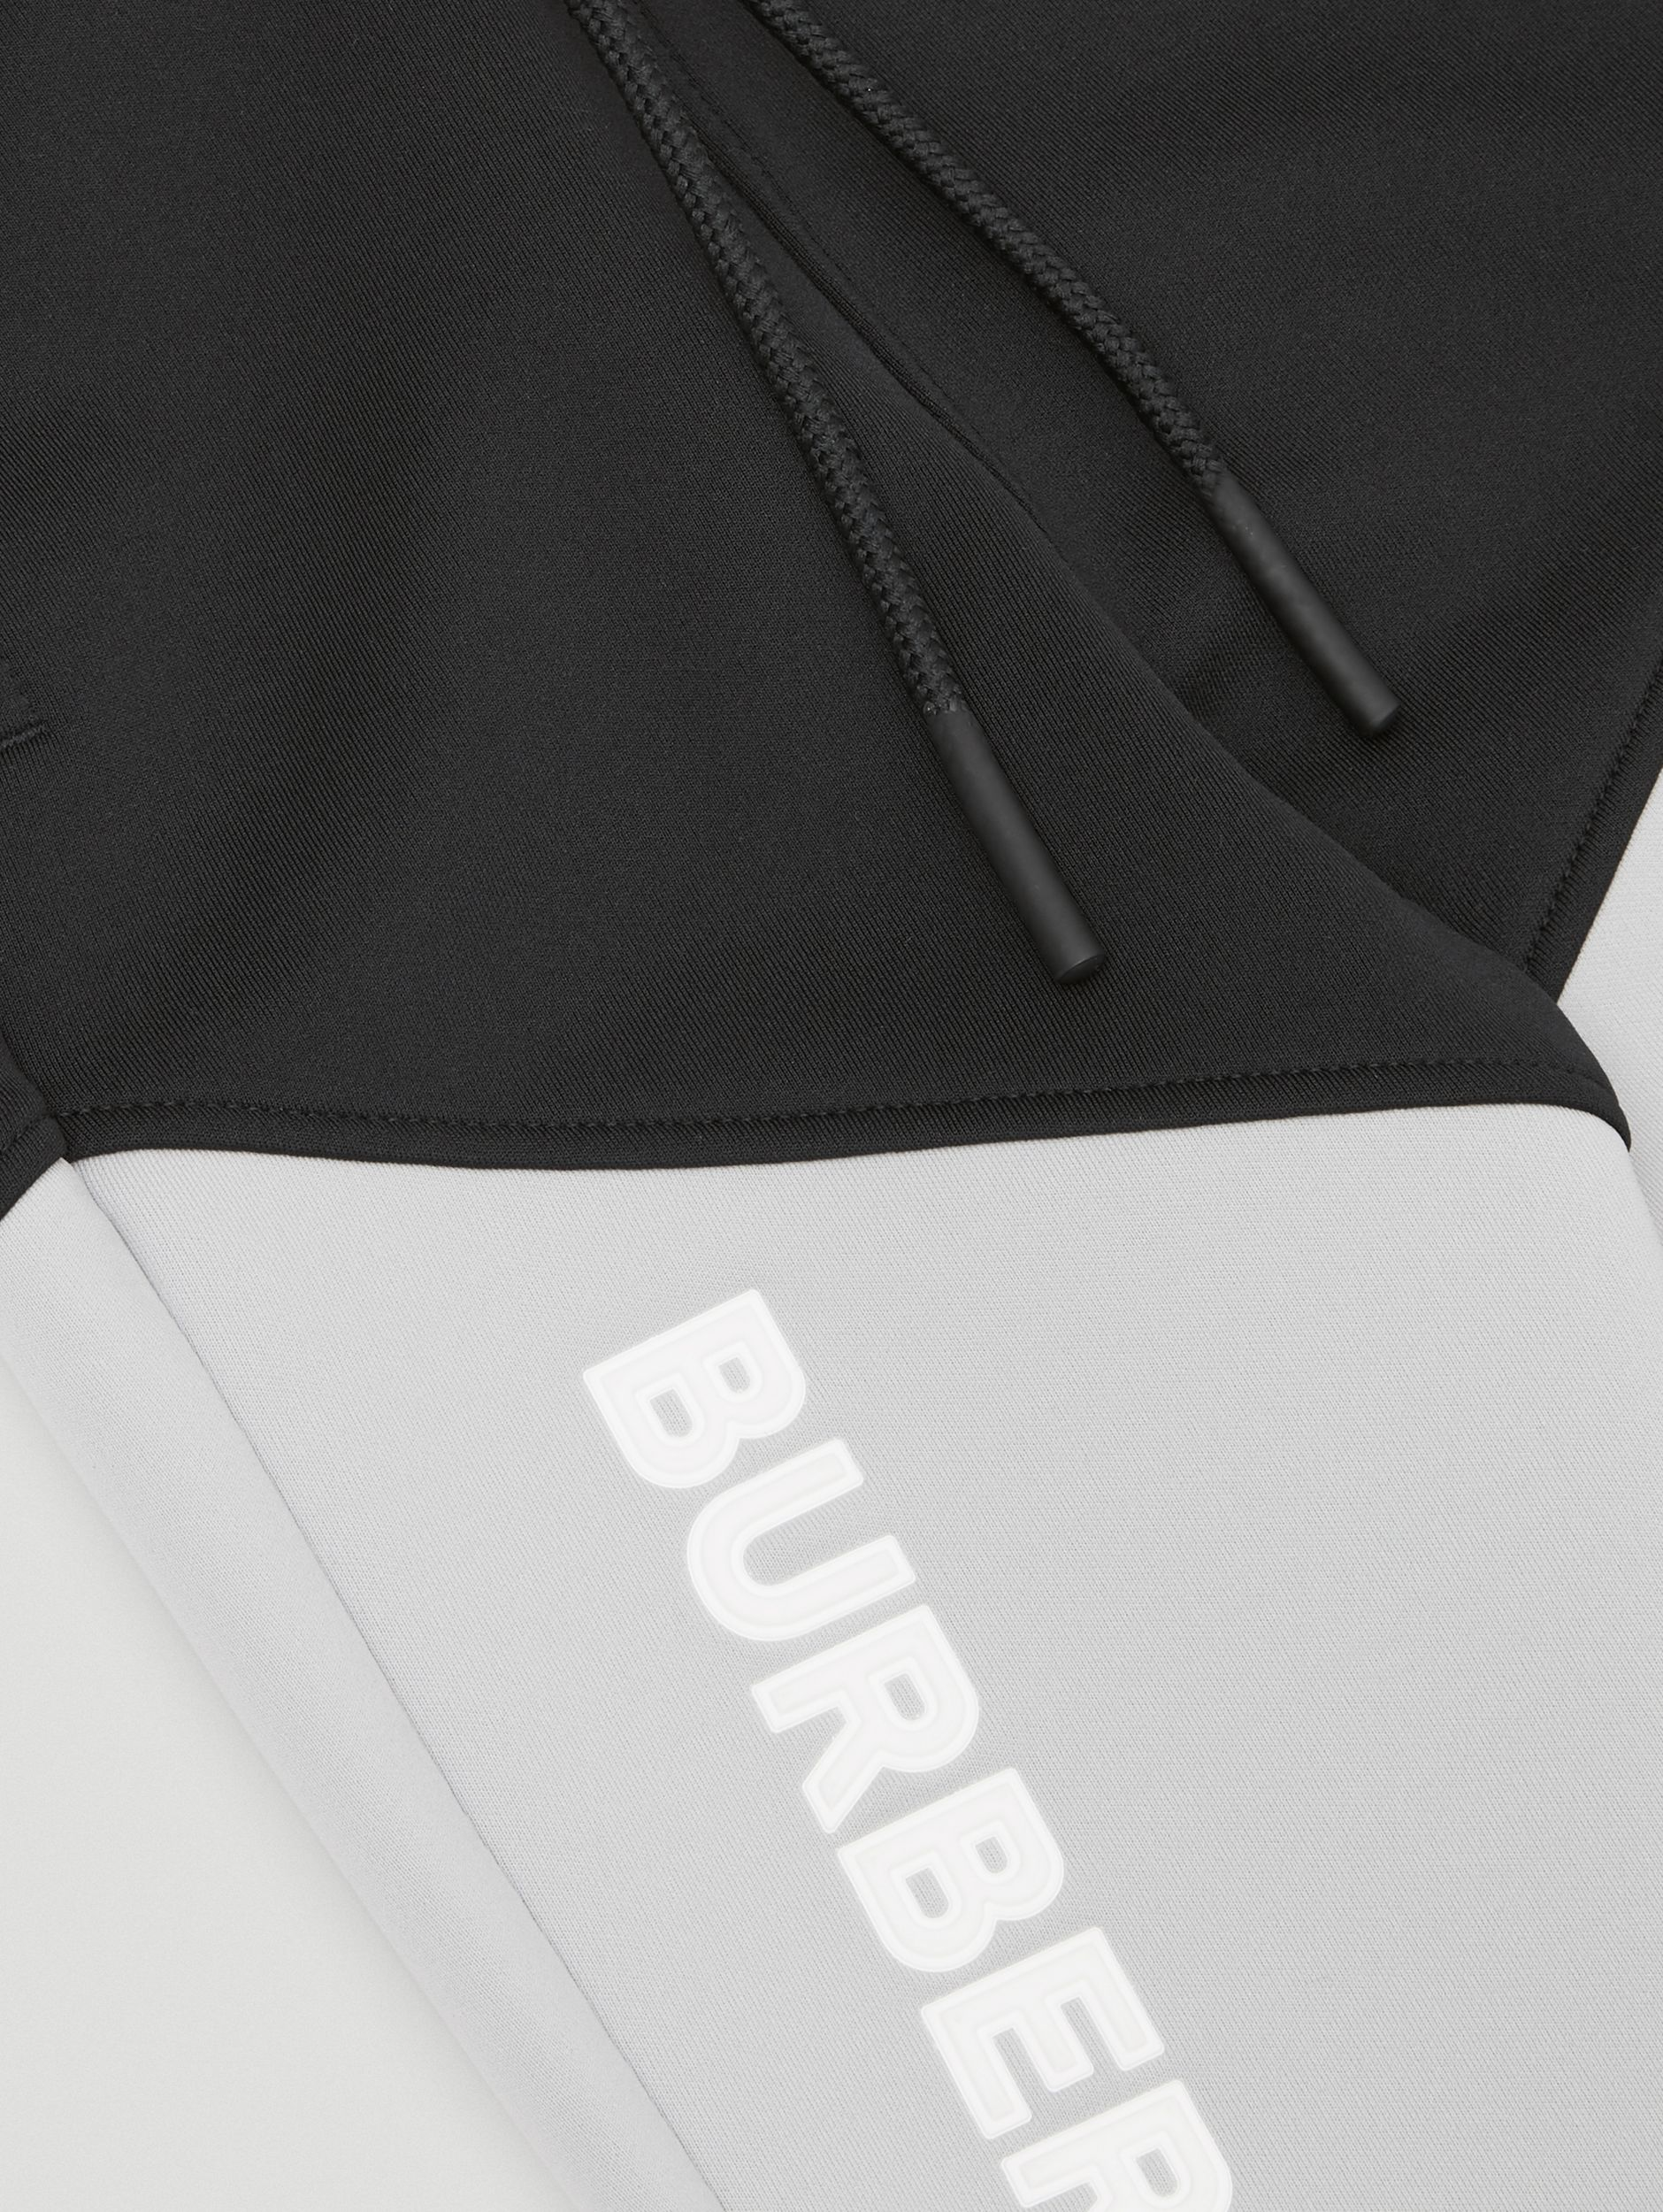 Logo Print Two-tone Stretch Jersey Trackpants in Black - Children | Burberry Singapore - 2